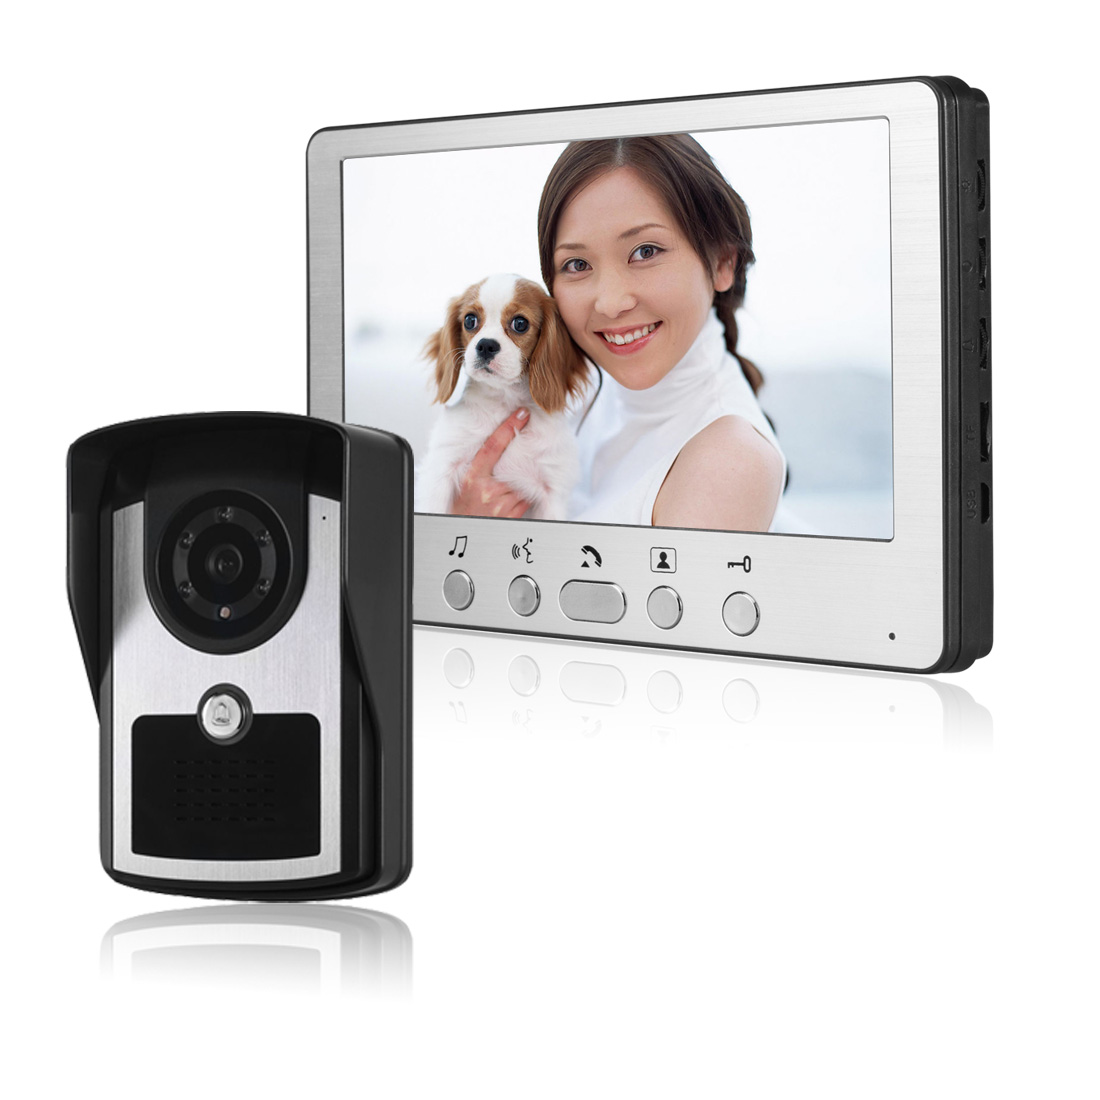 FREE SHIPPING NEW Wired 7 Color Screen Video Door Phone Intercom System + IR Night Vision Outdoor Doorbell Camera Home Security free shipping new handheld 4 3 inch color tft video door phone doorbell intercom night vision door bell camera 2 screen in stock